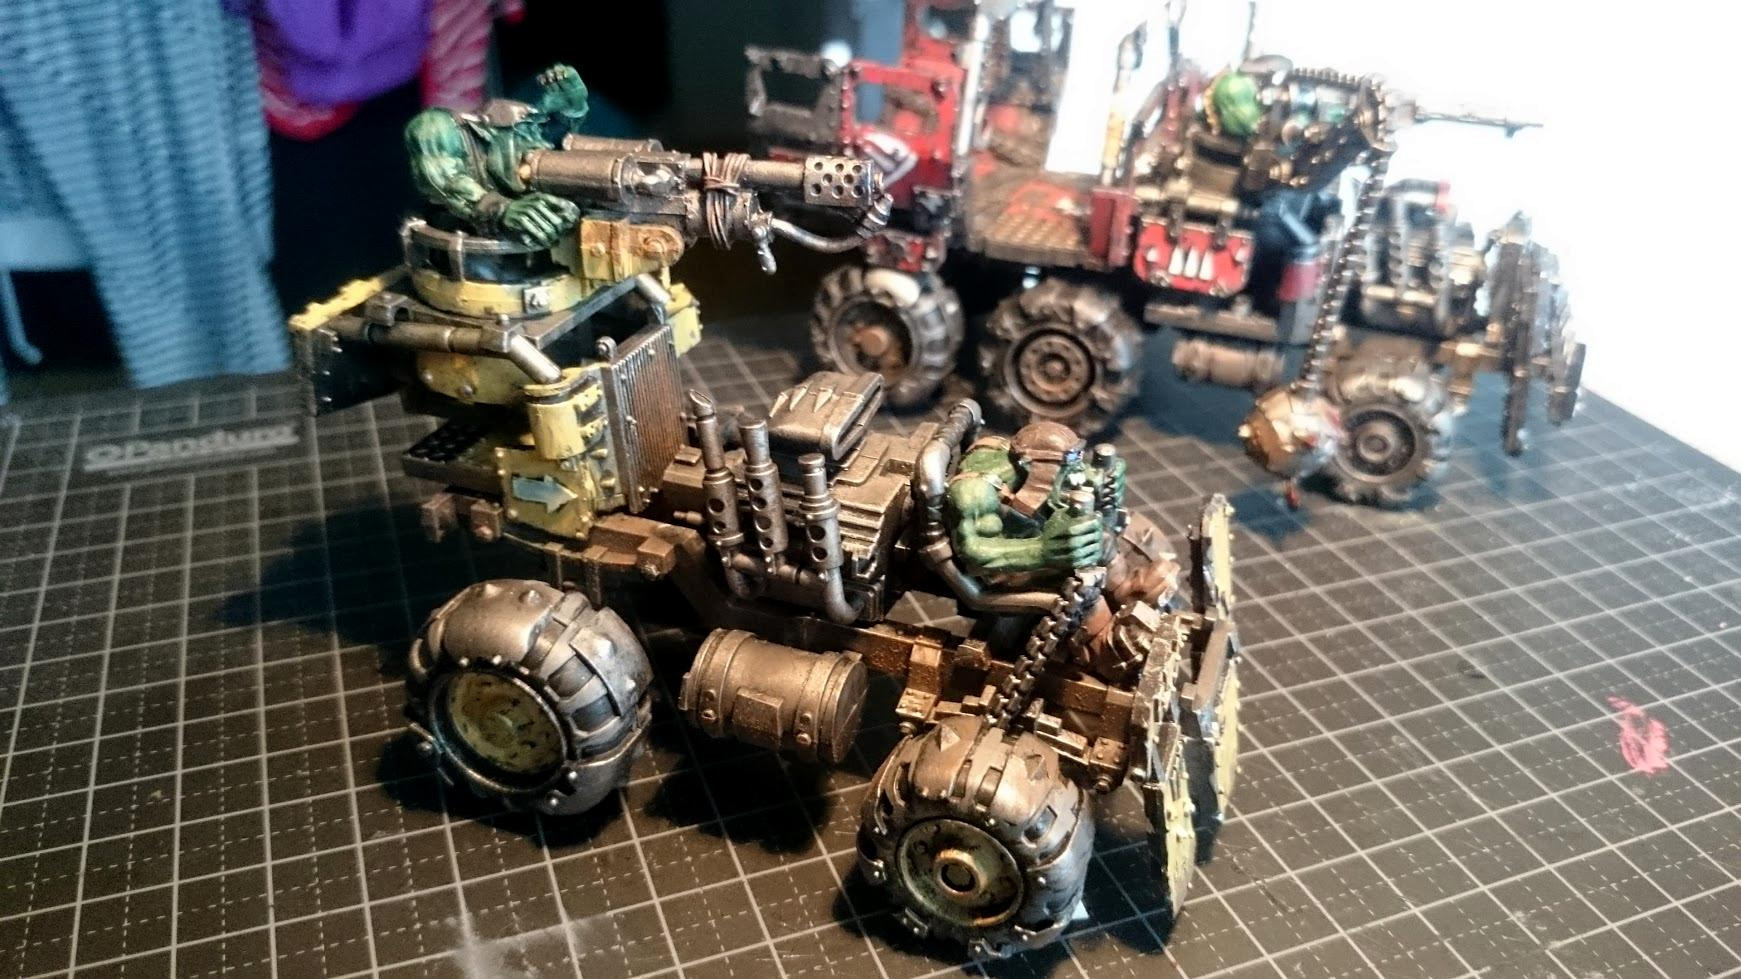 Buggy, Conversion, Orks, Painting, Skorcha, Warbuggy, Warhammer 40,000, Weathered